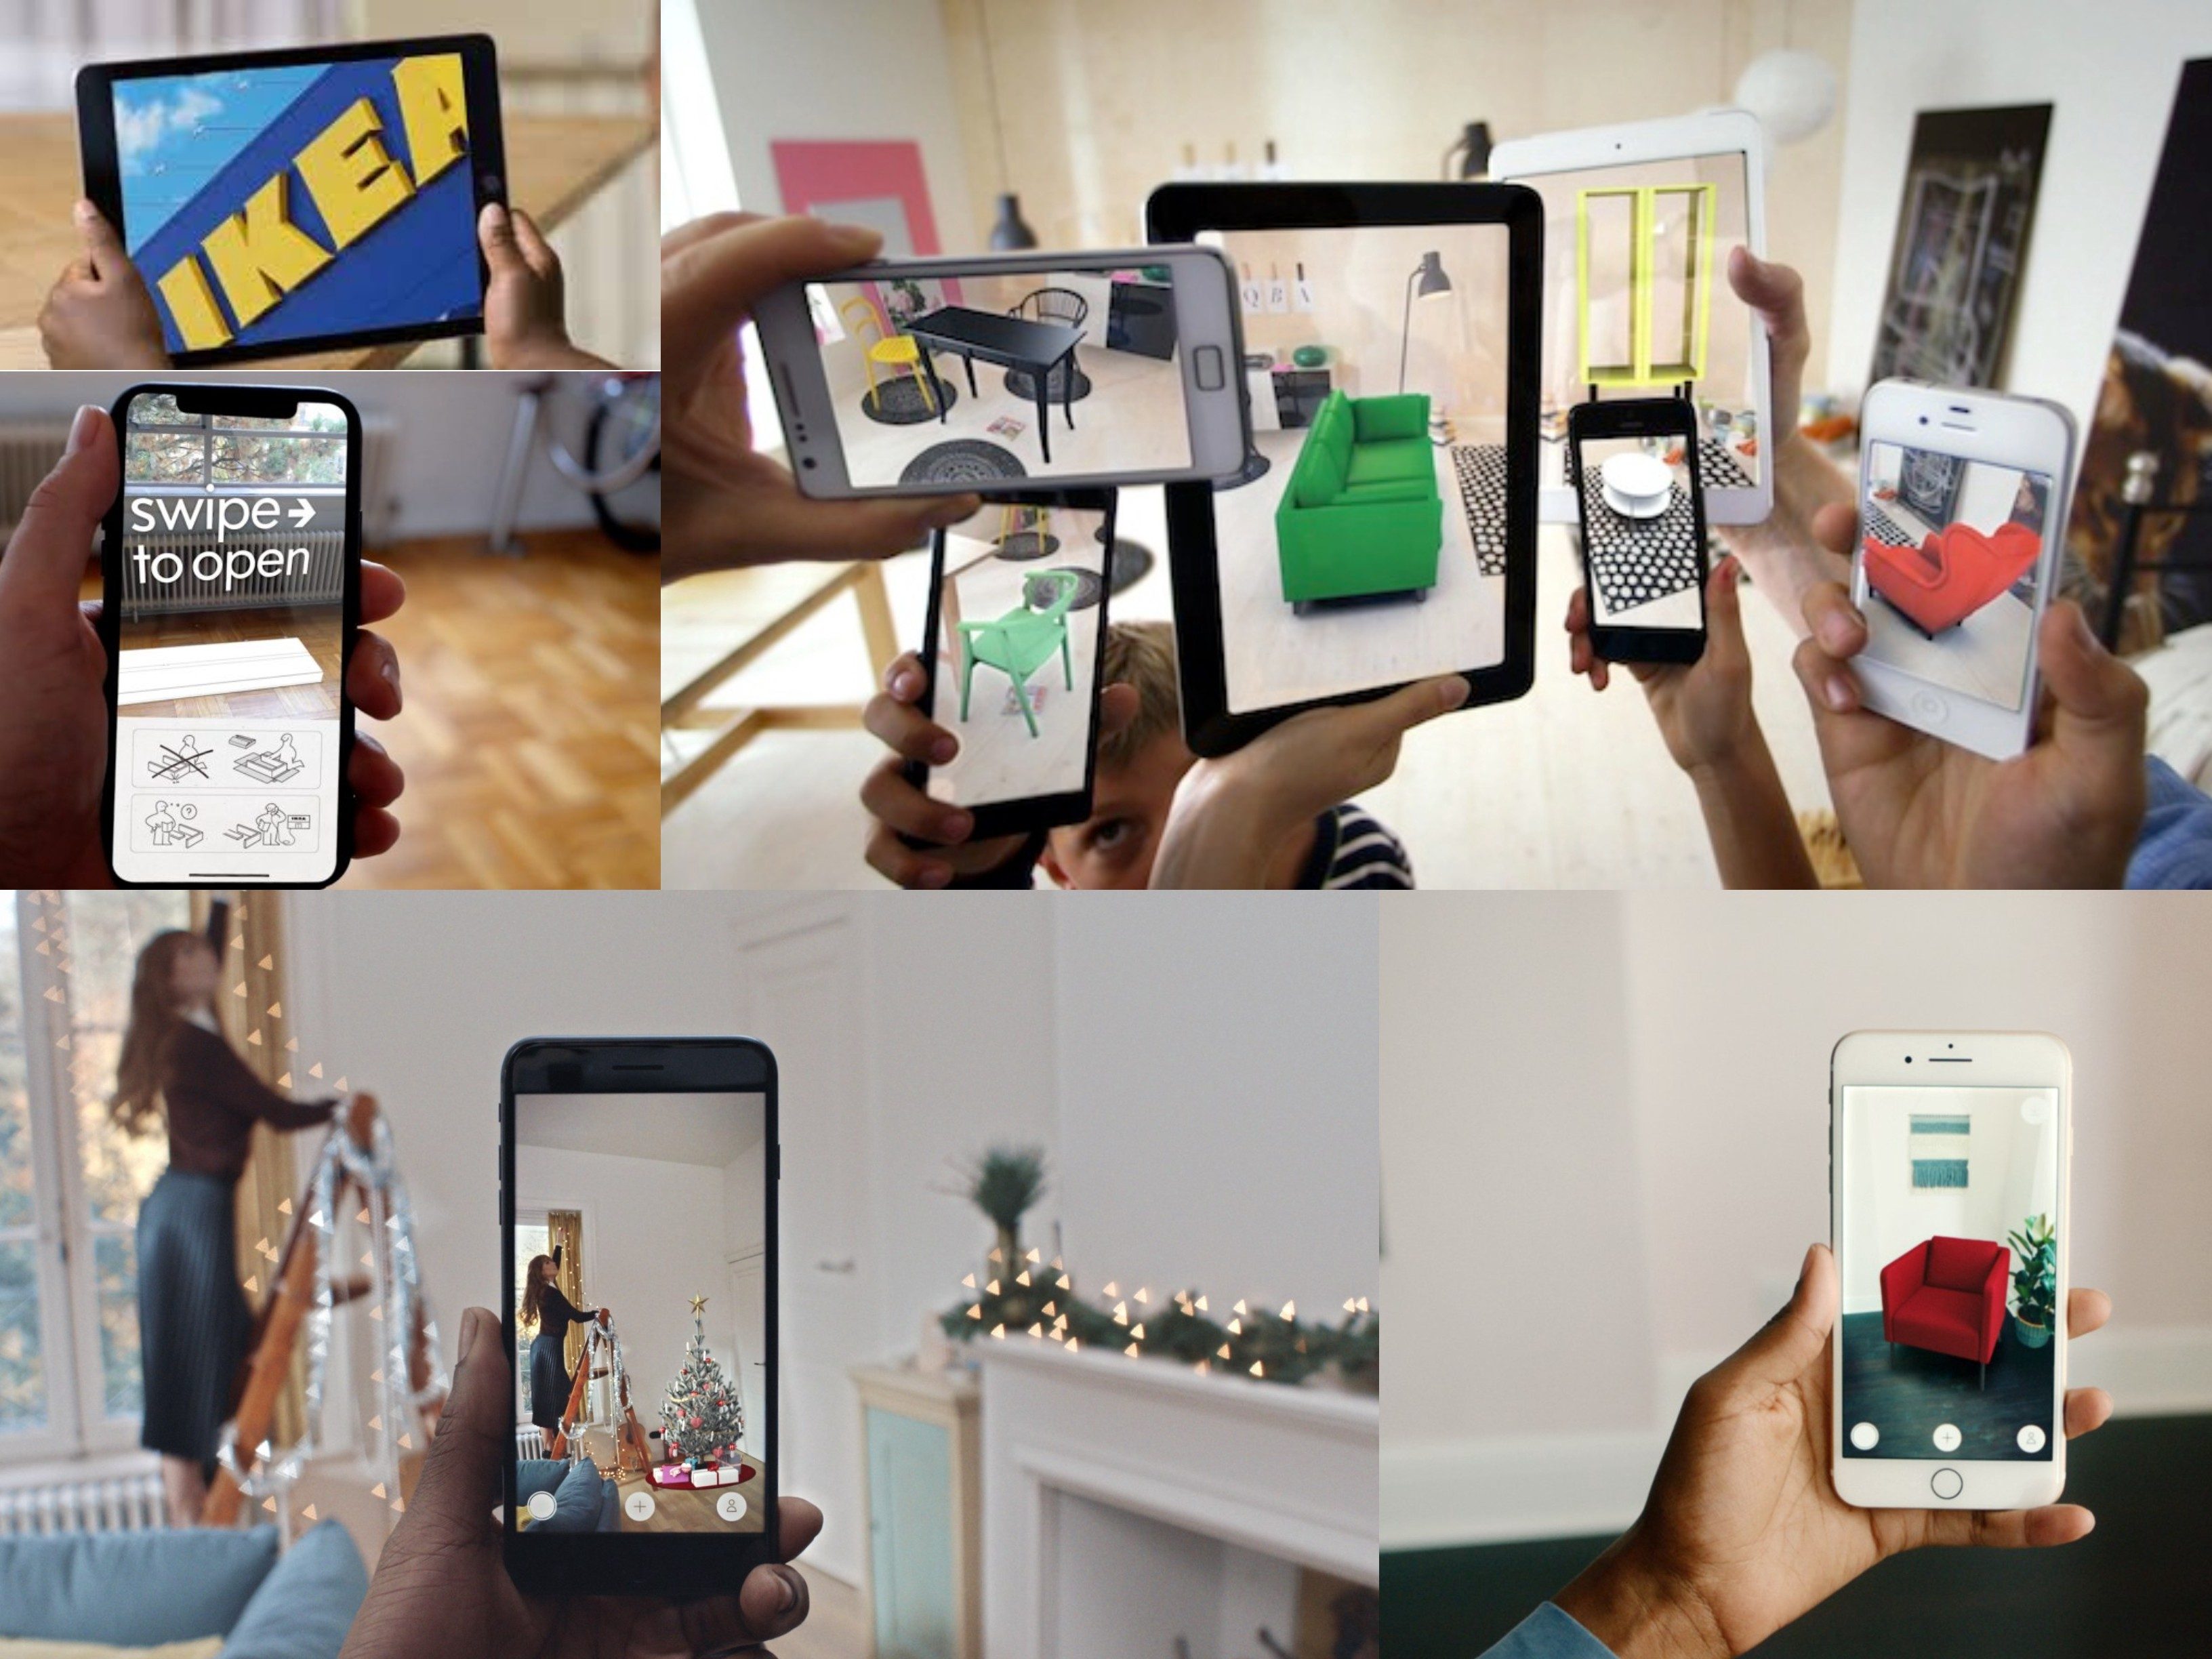 ikea augmented reality marketing